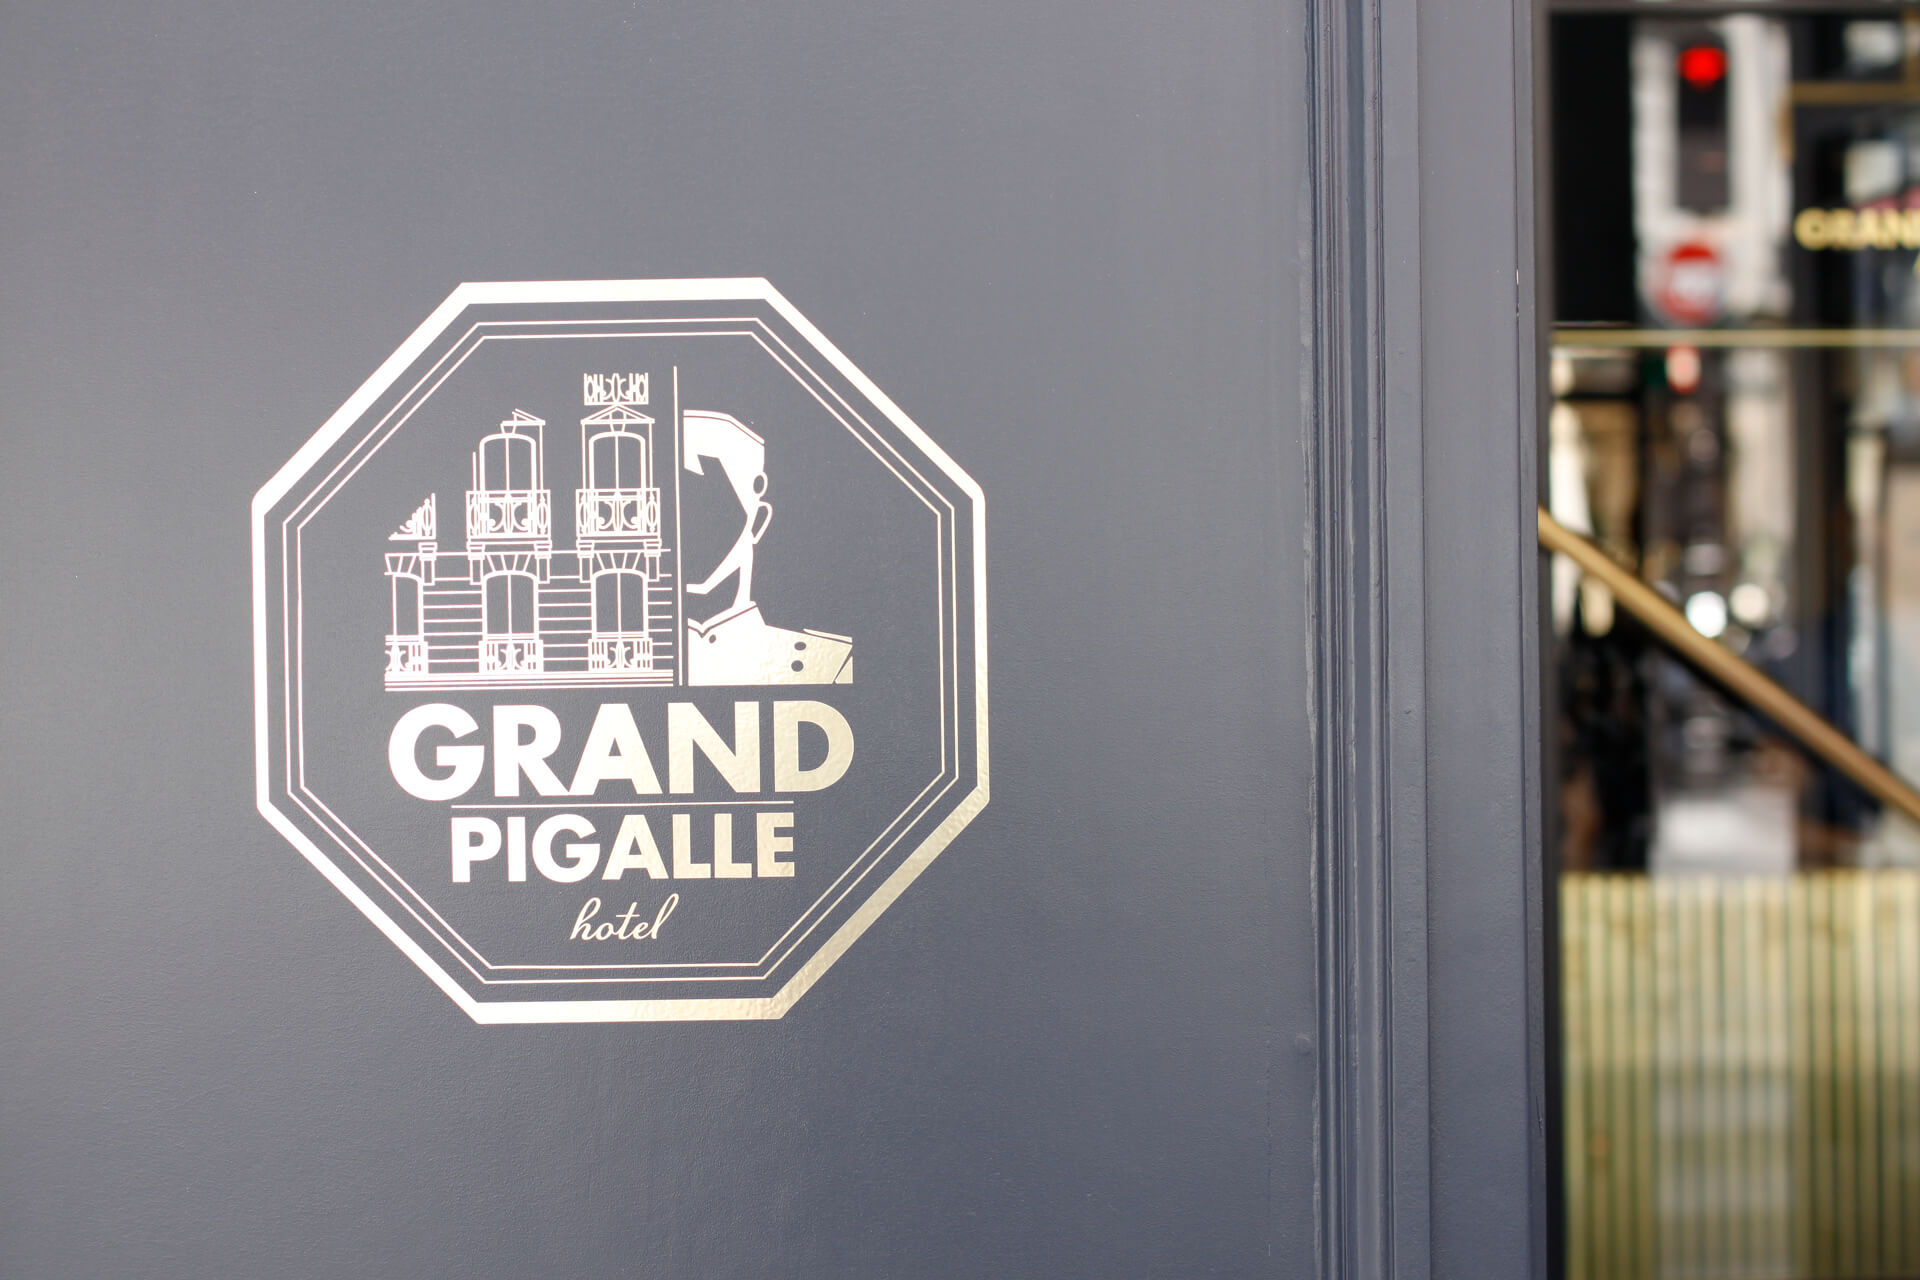 grand pigalle hotel paris logo 2